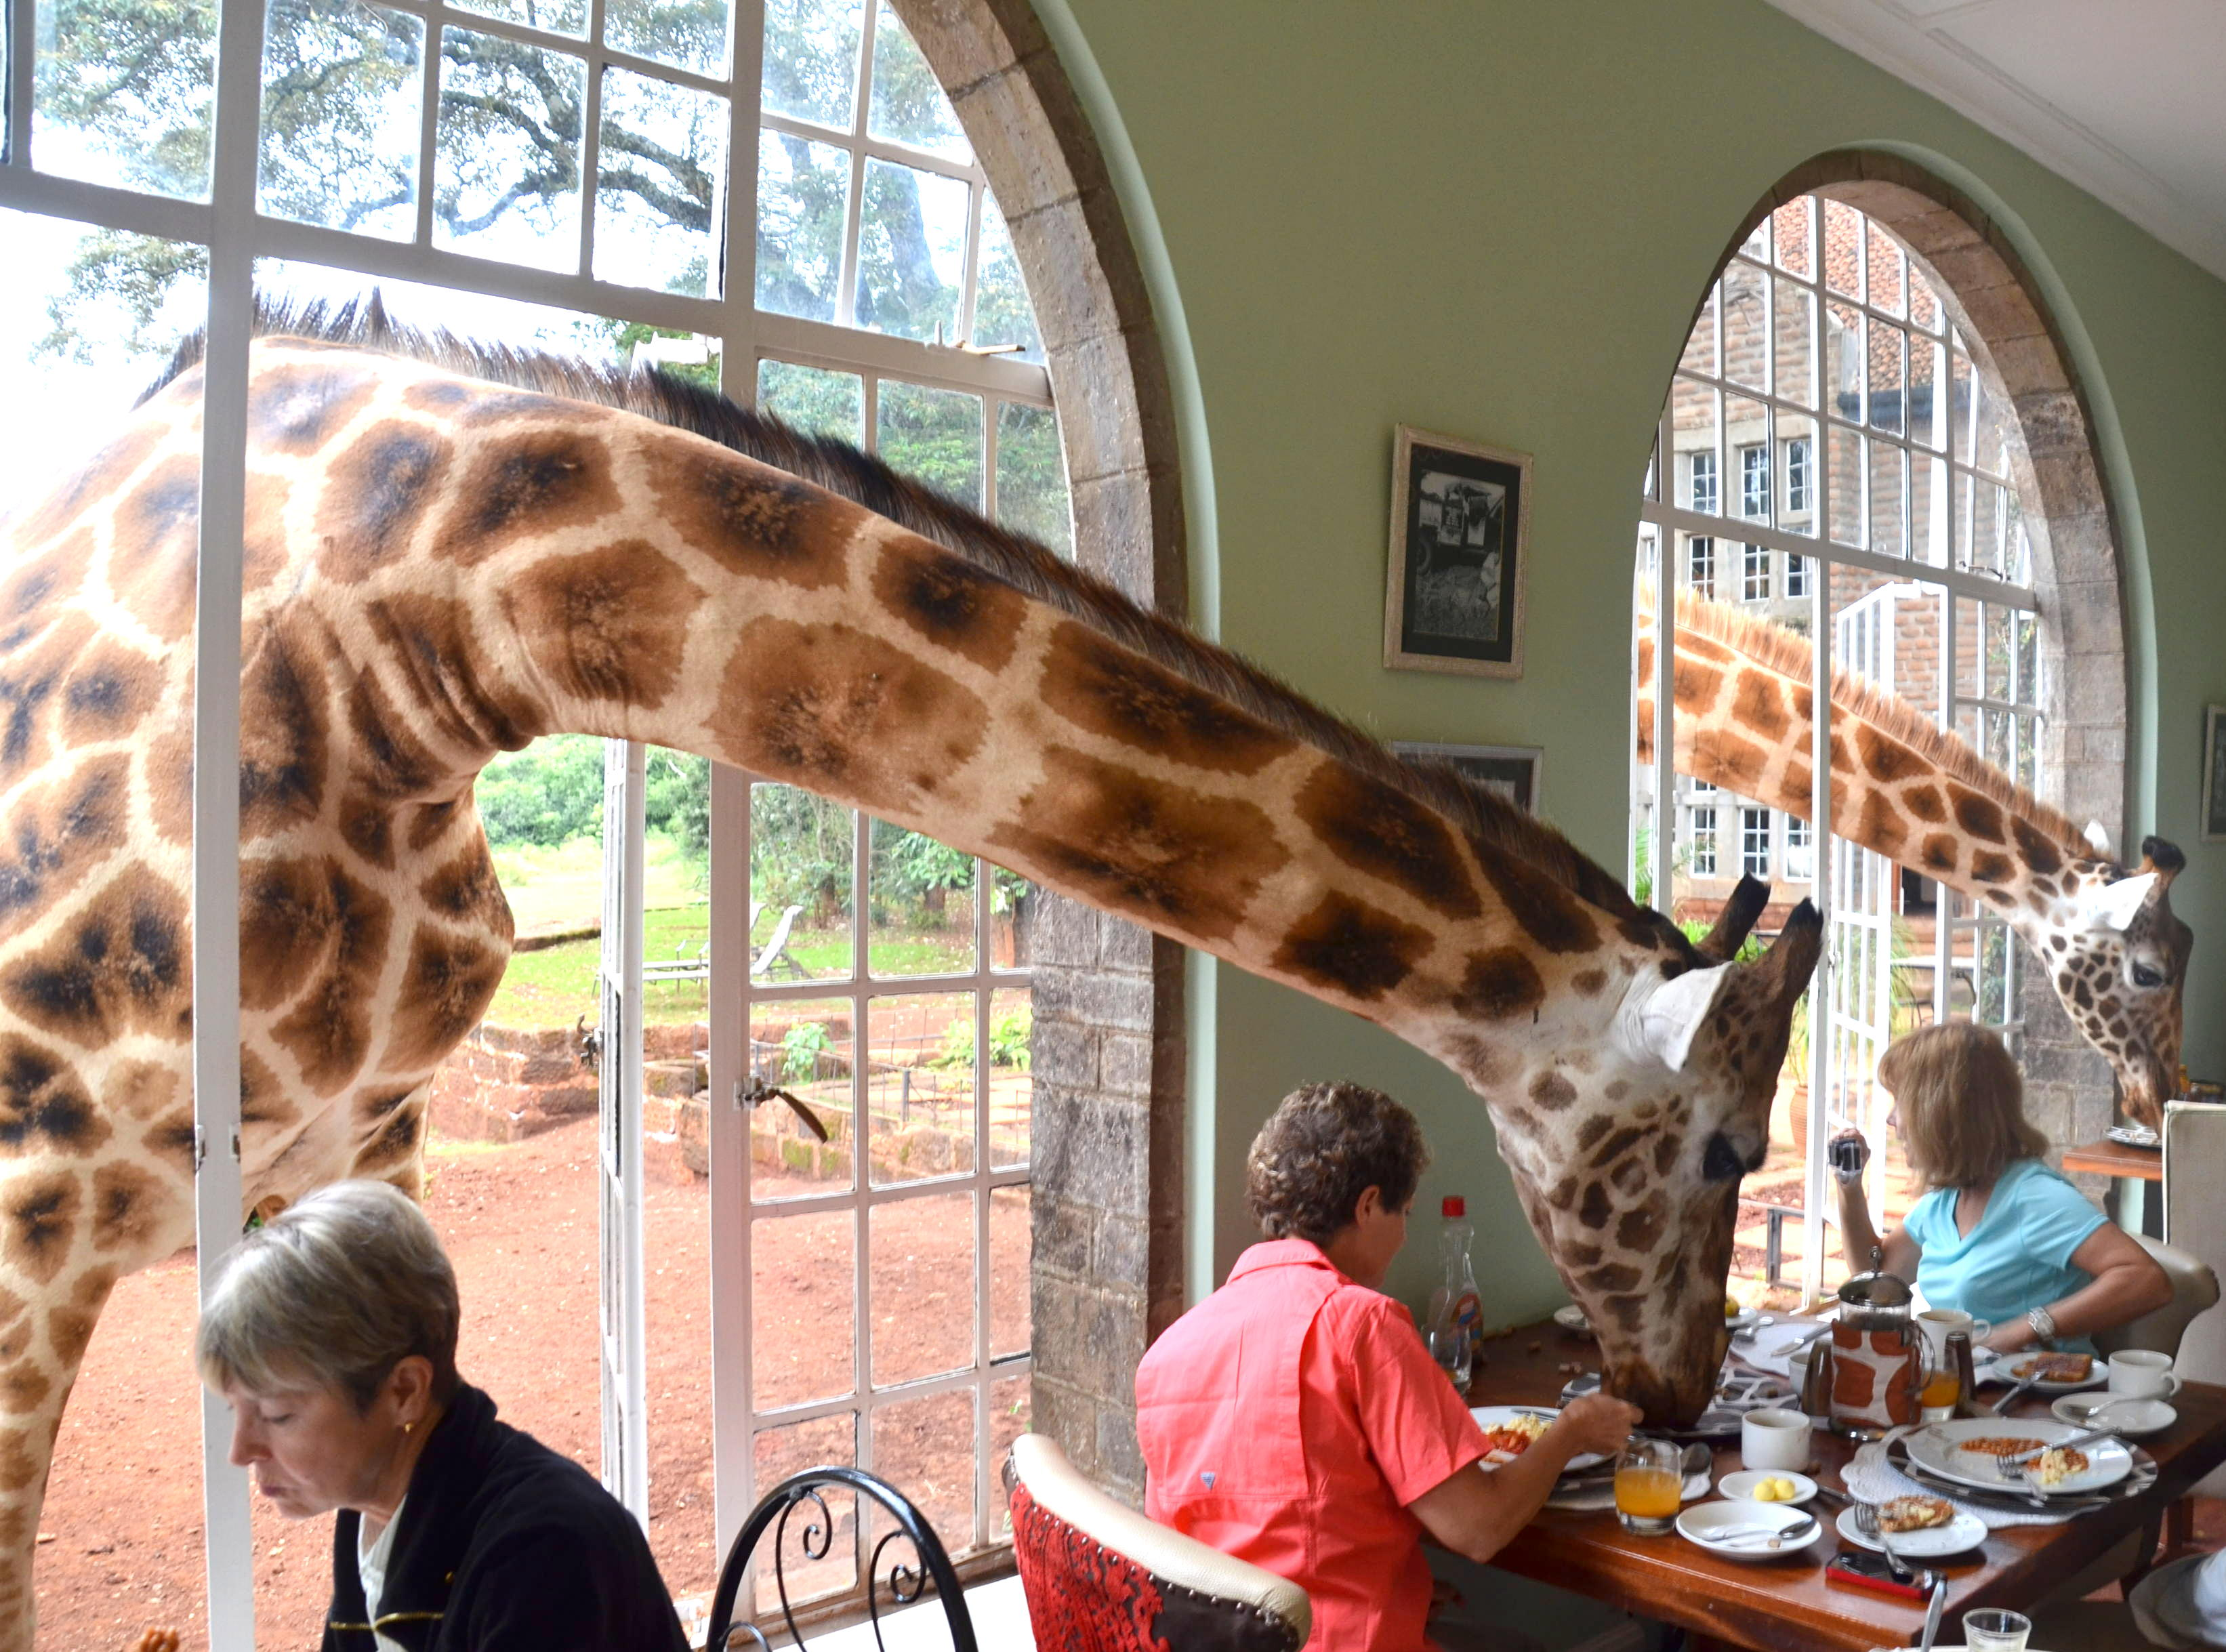 Giraffes eating with tourists